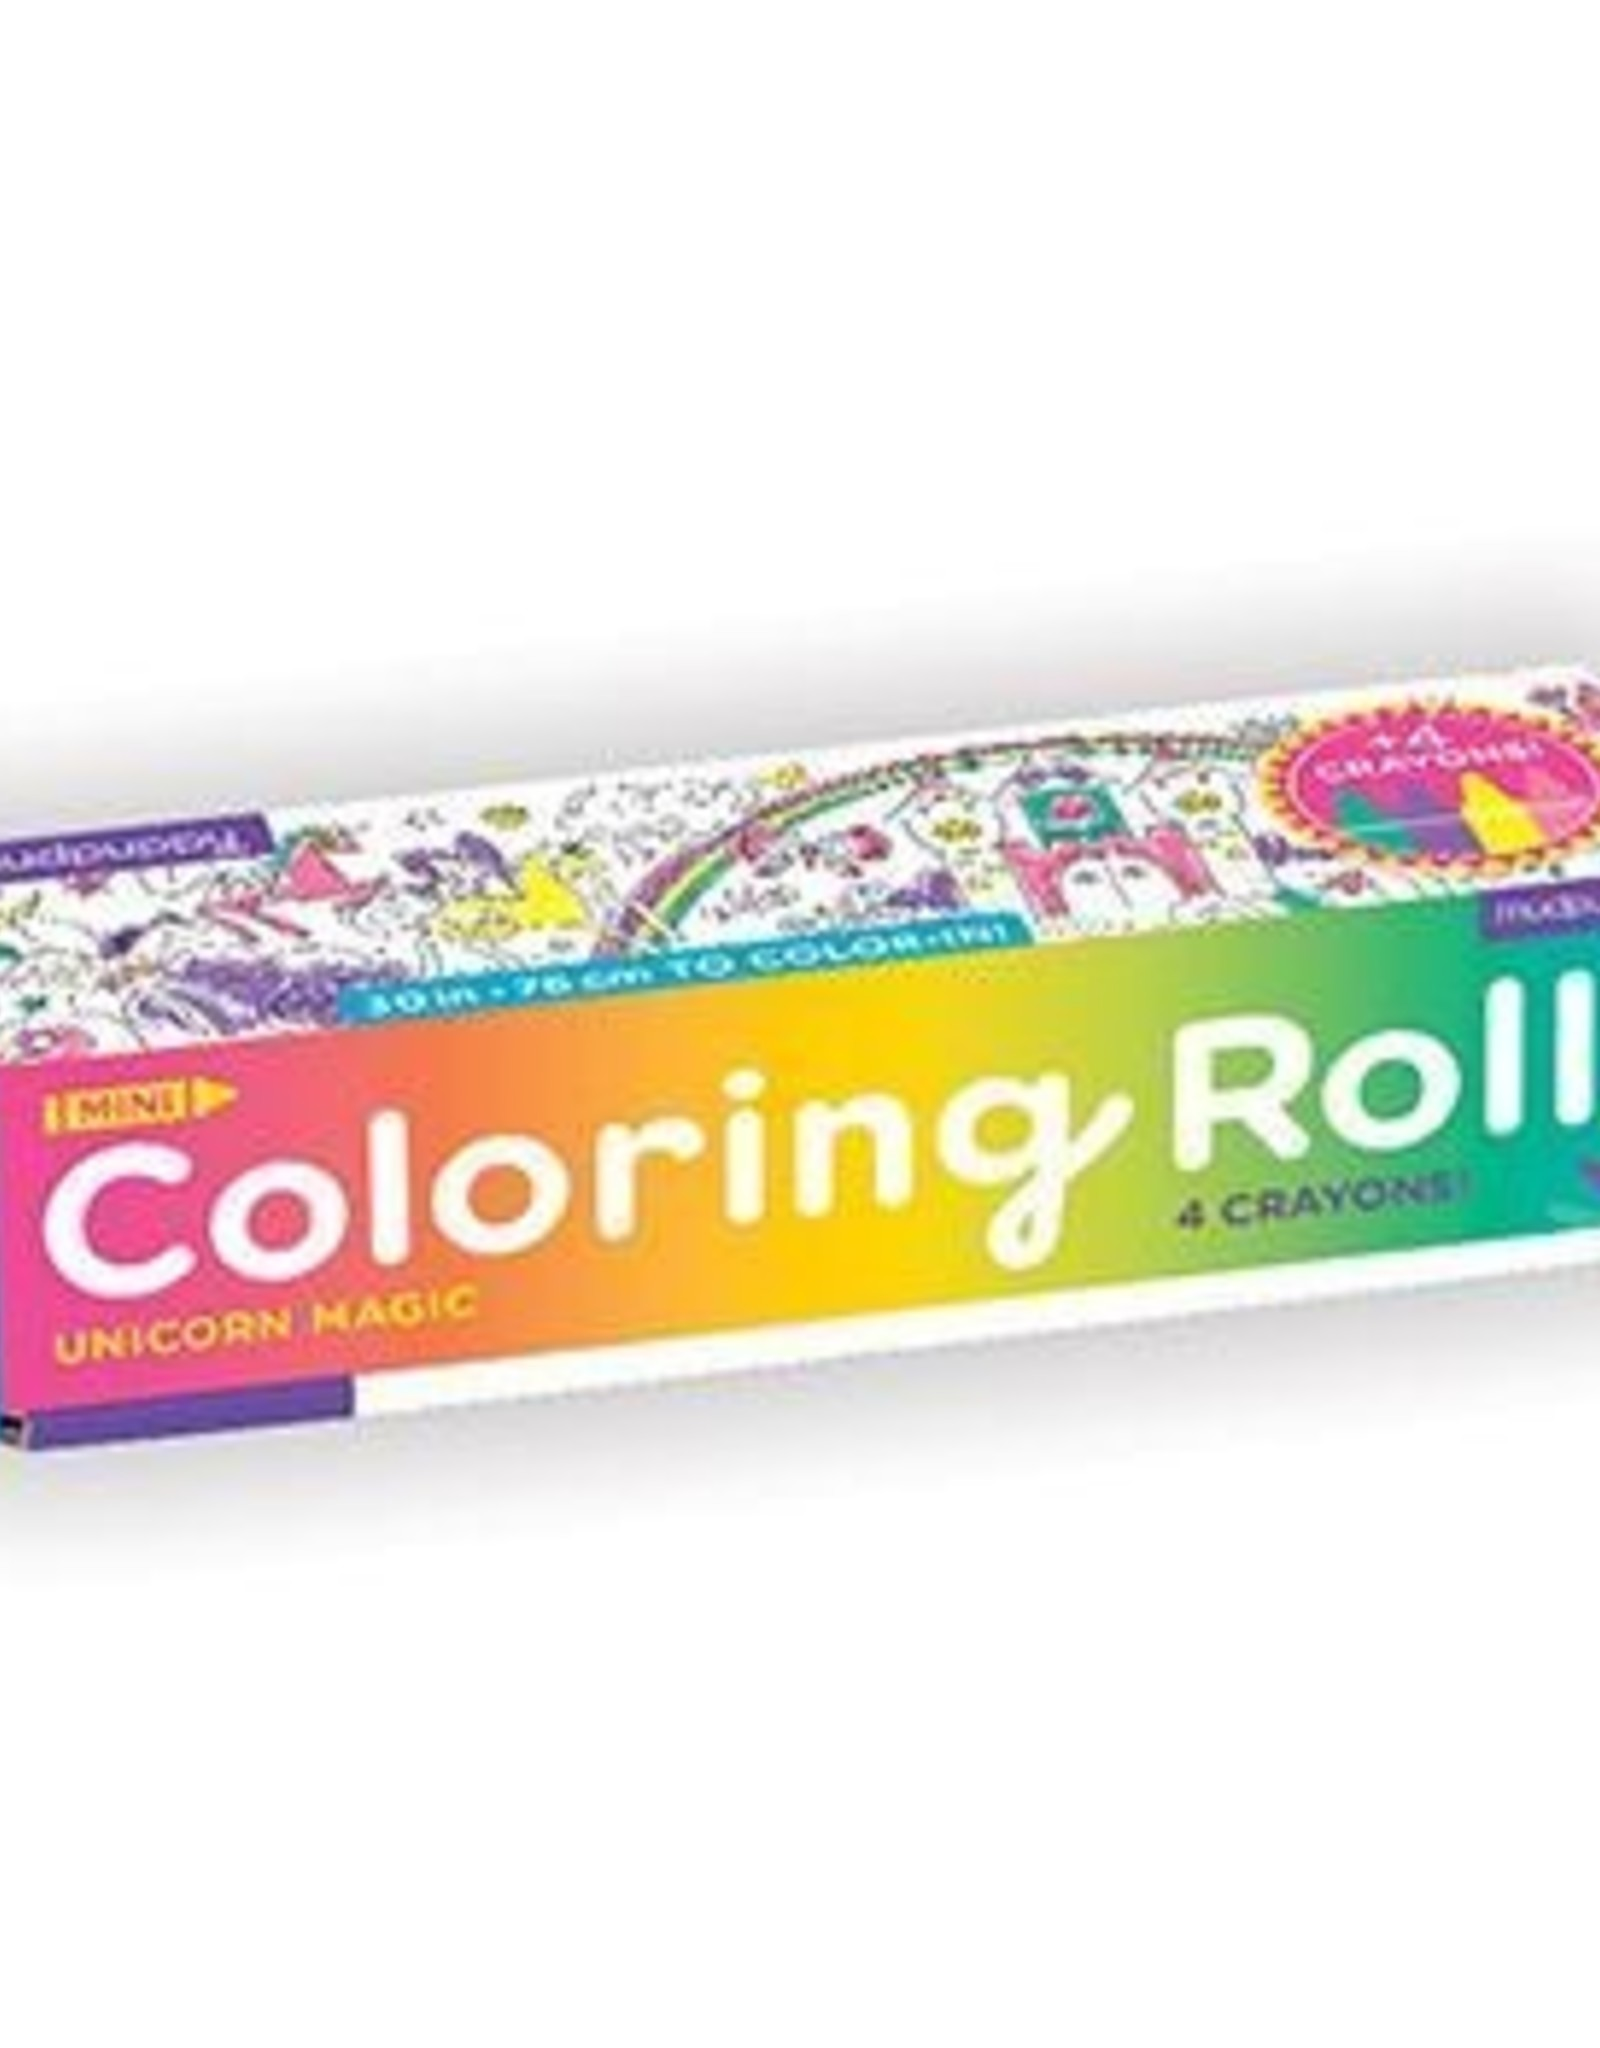 Coloring Roll: Unicorn Magic Mini